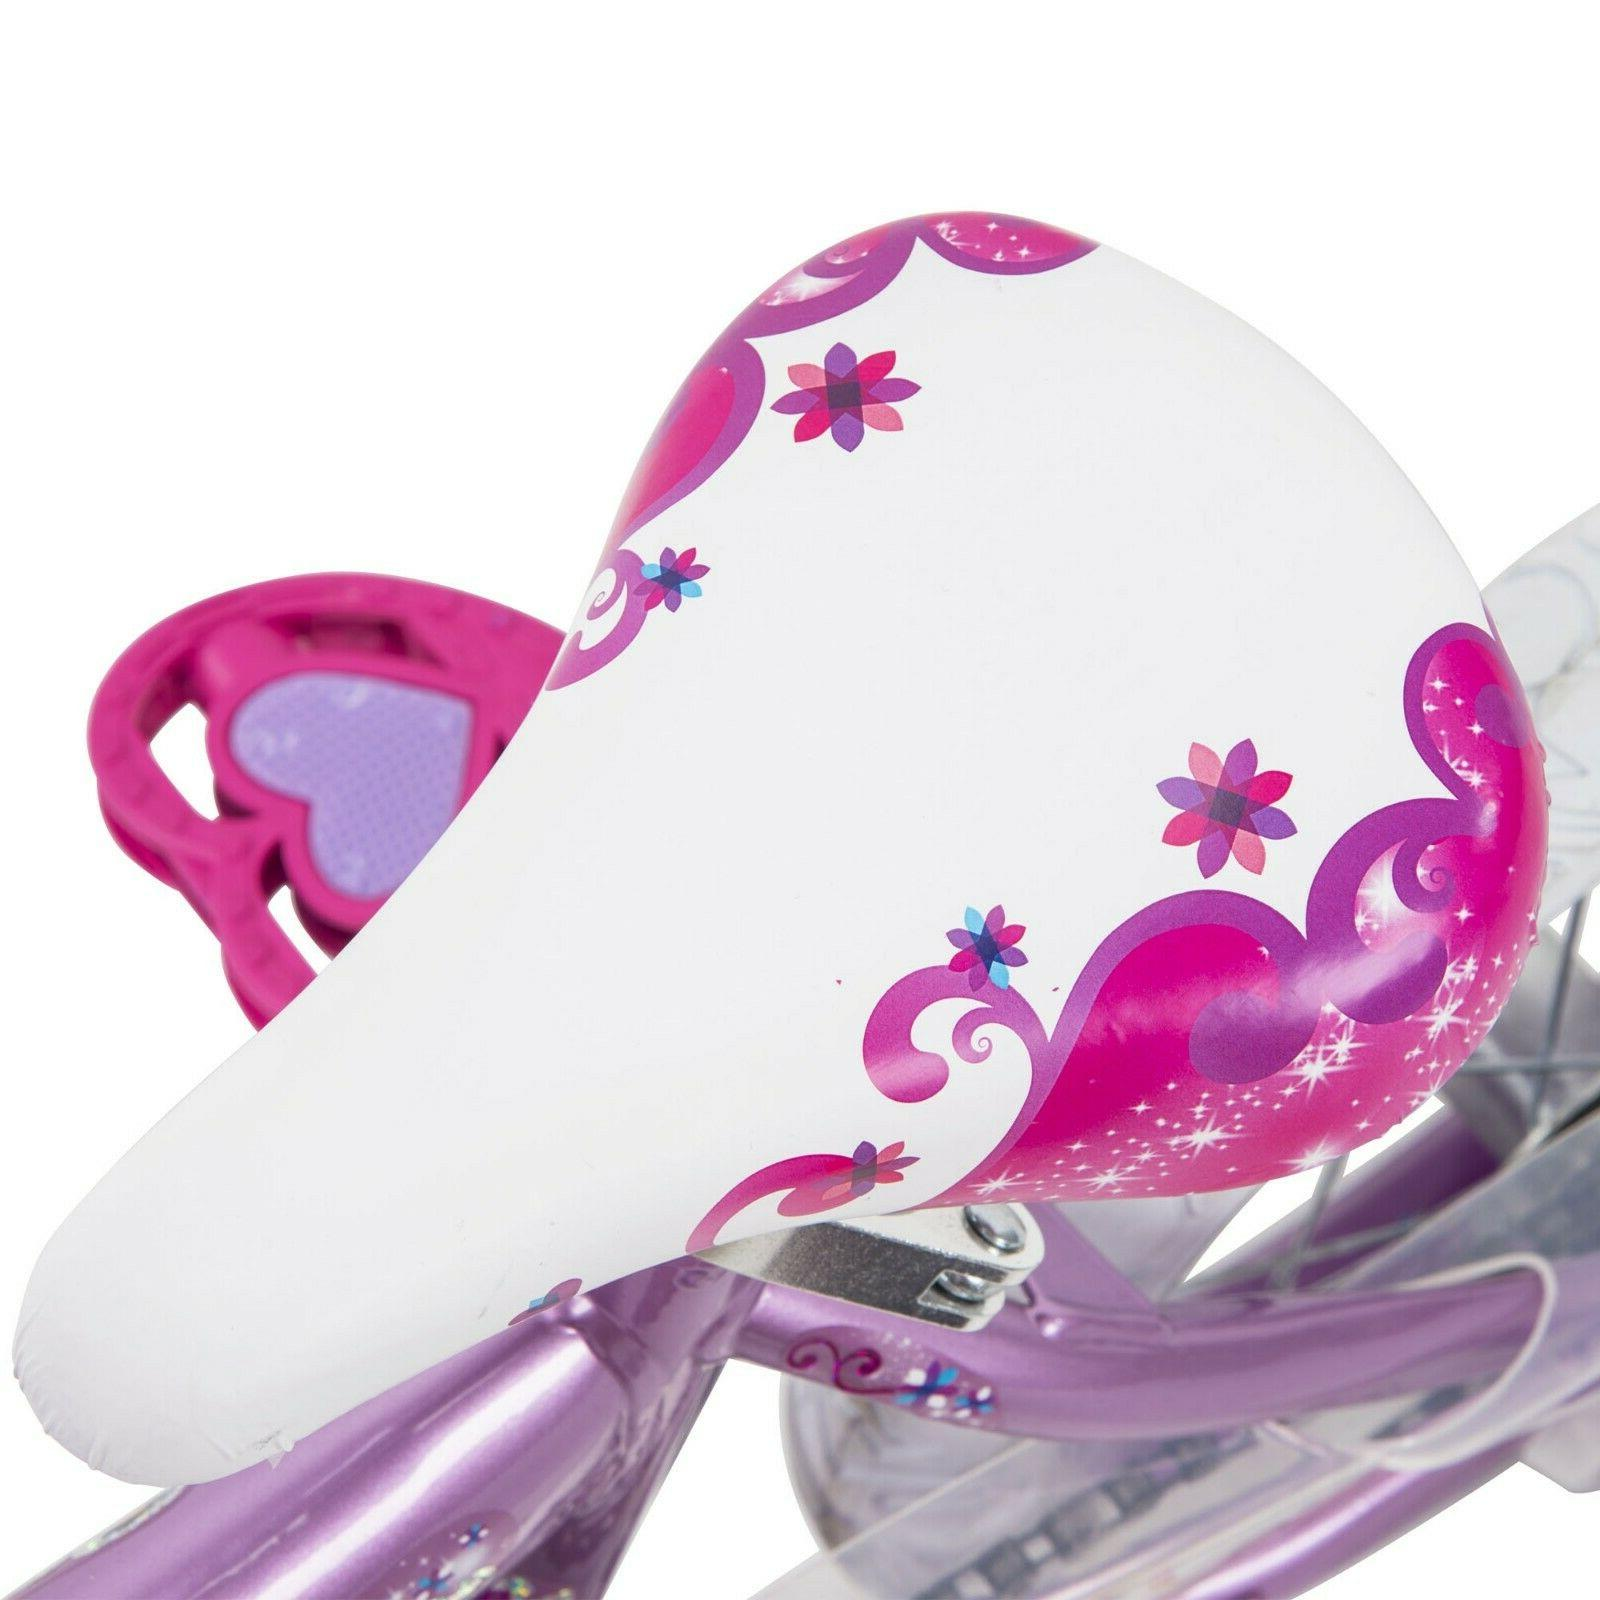 Huffy Disney Bike 12 inch, Pink/Purple with Carriage